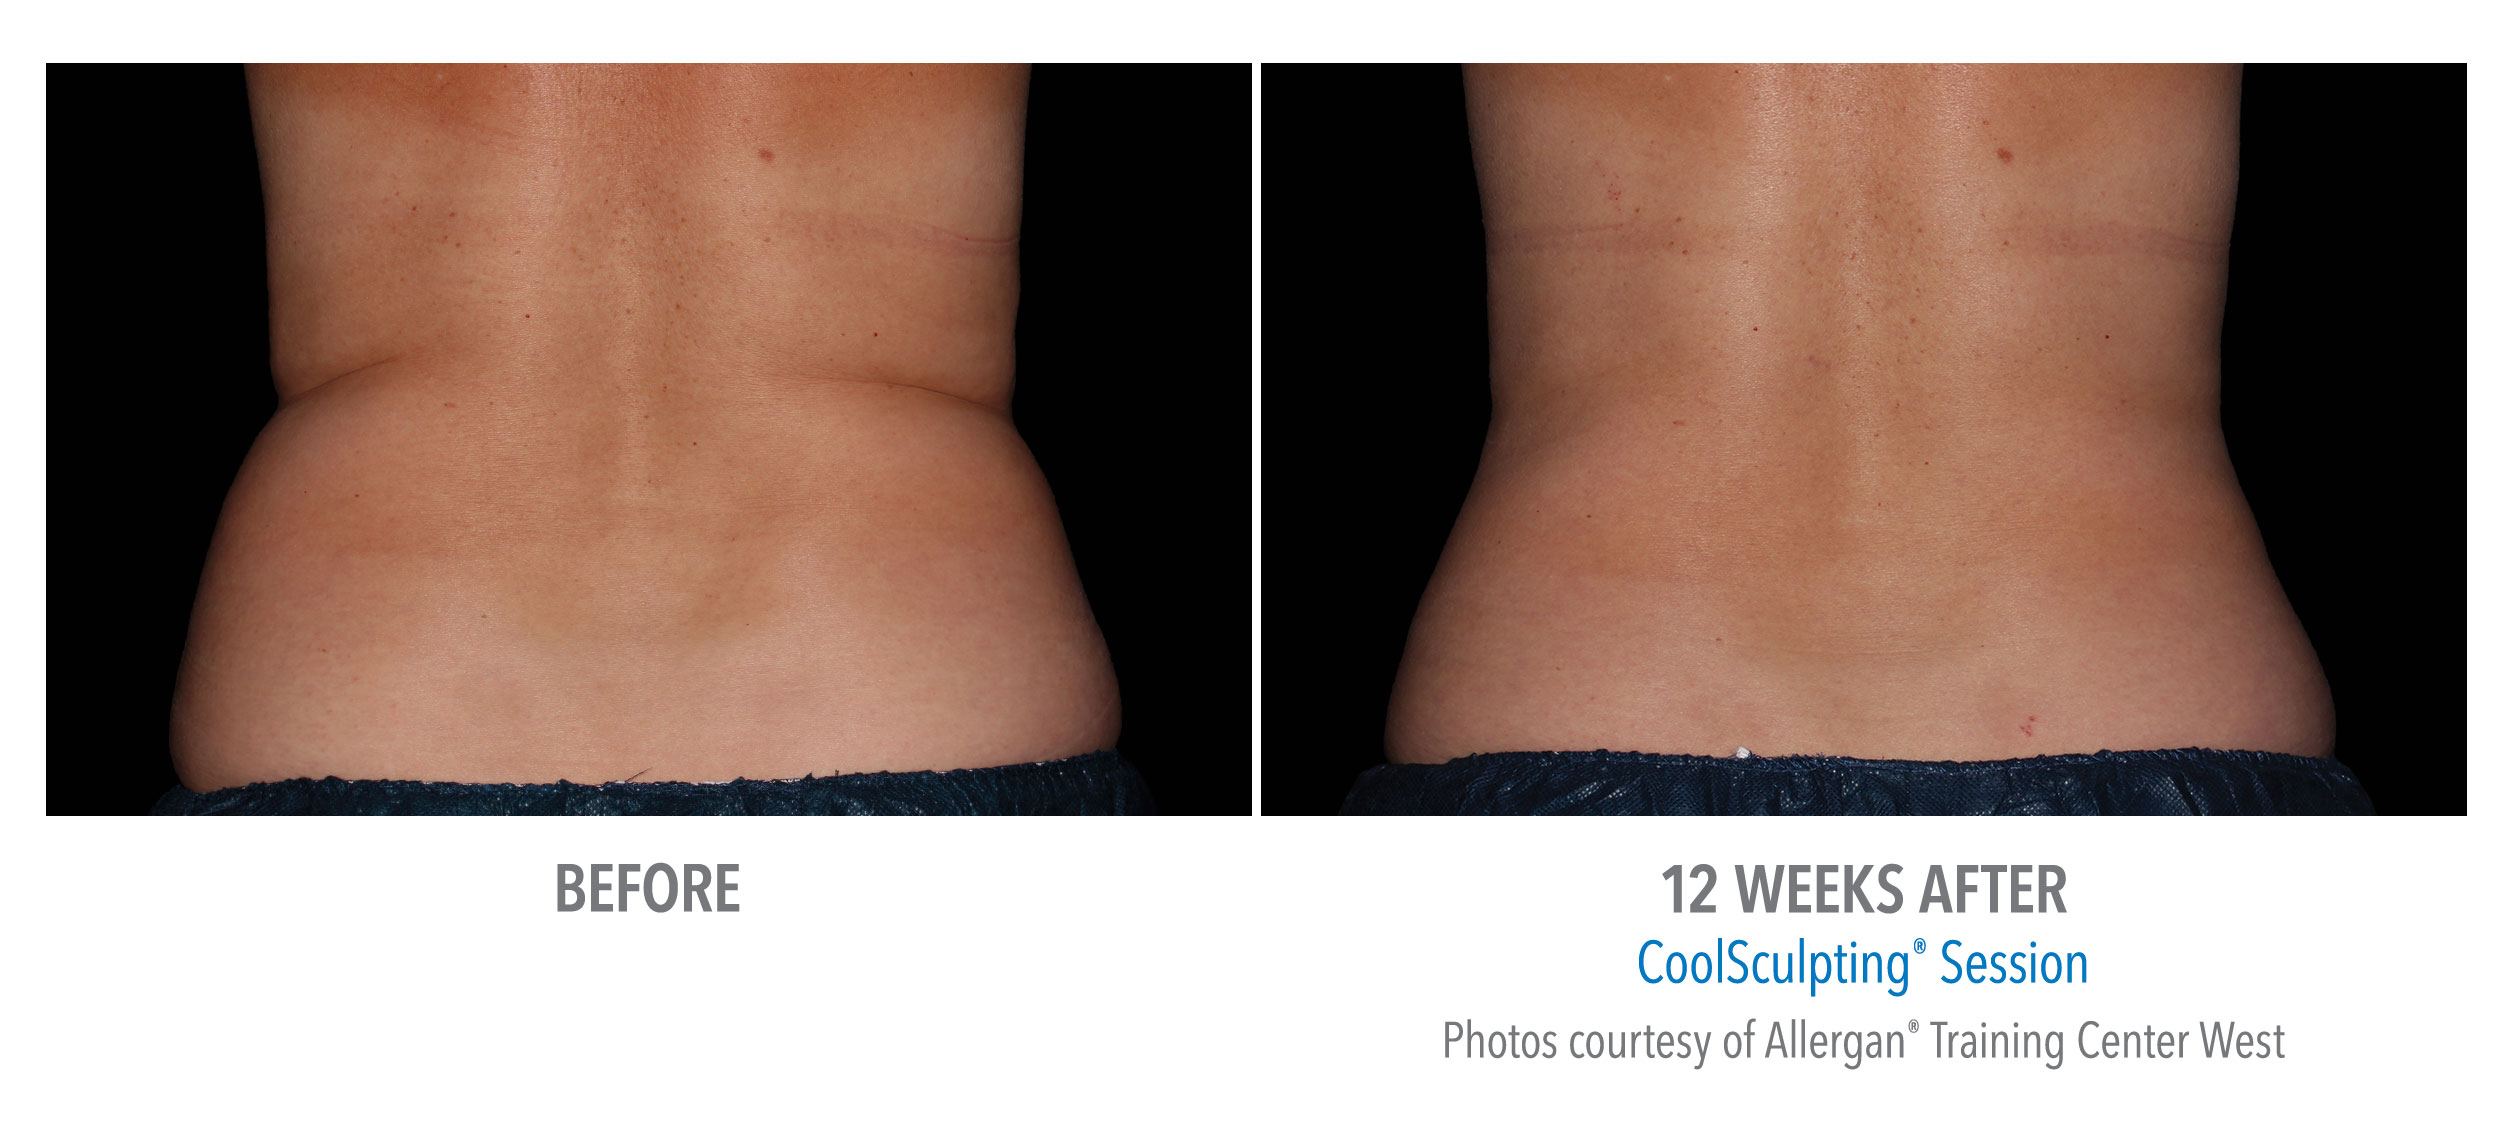 torrance-coolsculpting-back-flank-lower flank-coolsculpting